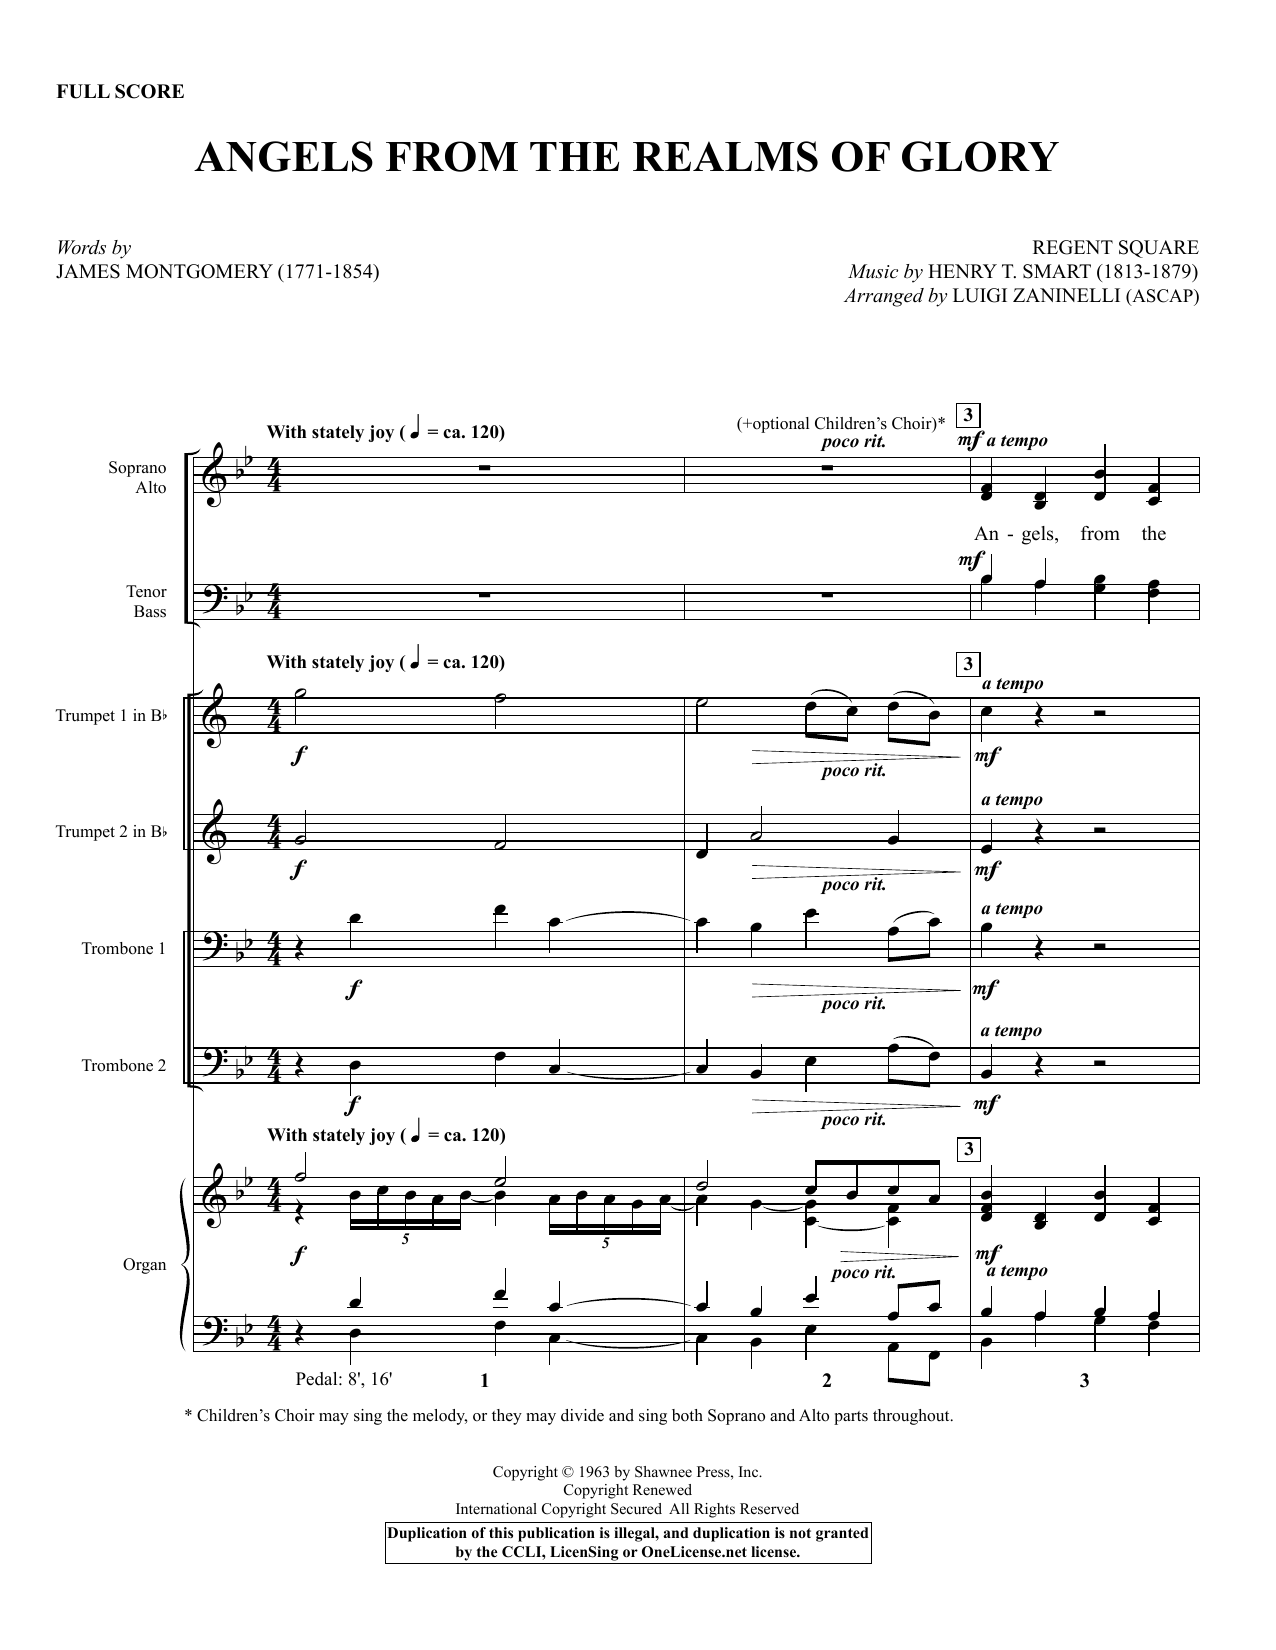 Angels from the Realms of Glory (COMPLETE) sheet music for orchestra/band by Luigi Zaninelli, Henry T. Smart and James Montgomery. Score Image Preview.